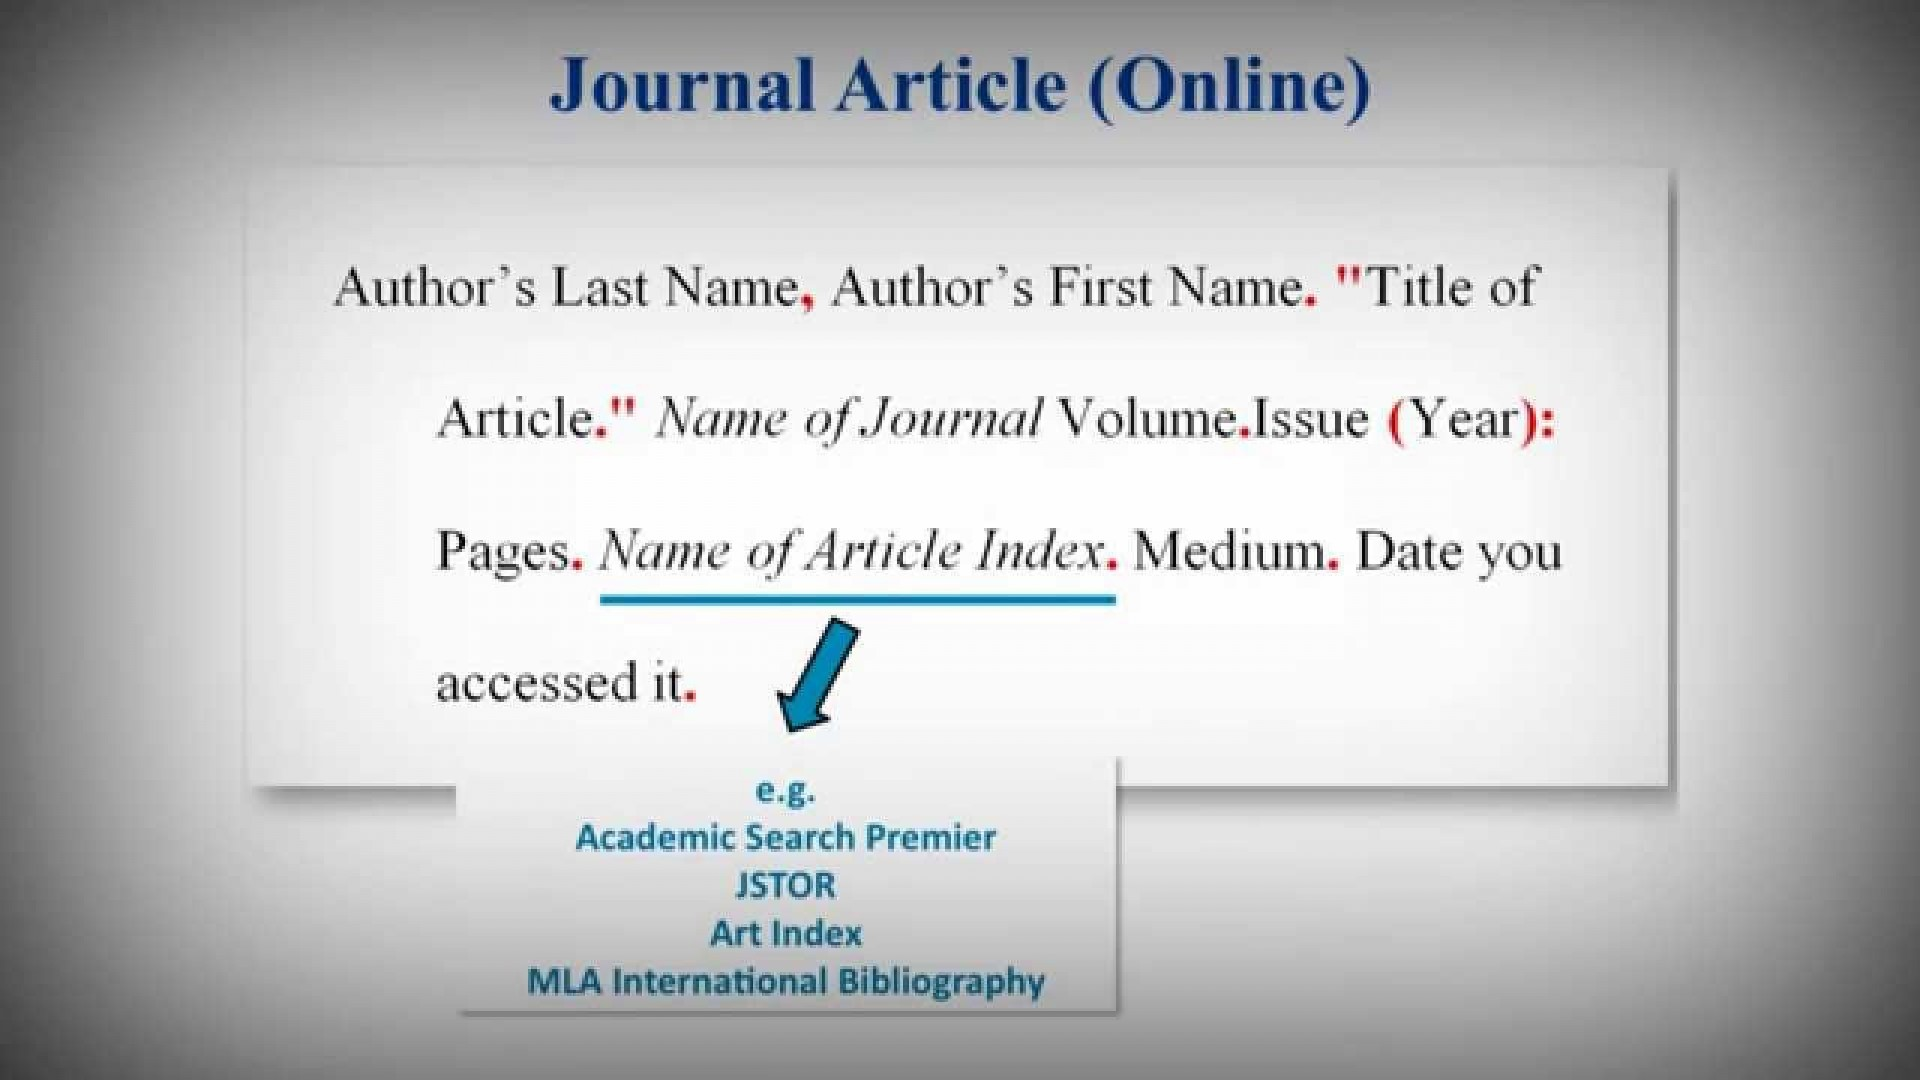 017 Maxresdefault How To Cite Articles In Essay Singular Article Title Text Apa A Quote From An Internet News 1920